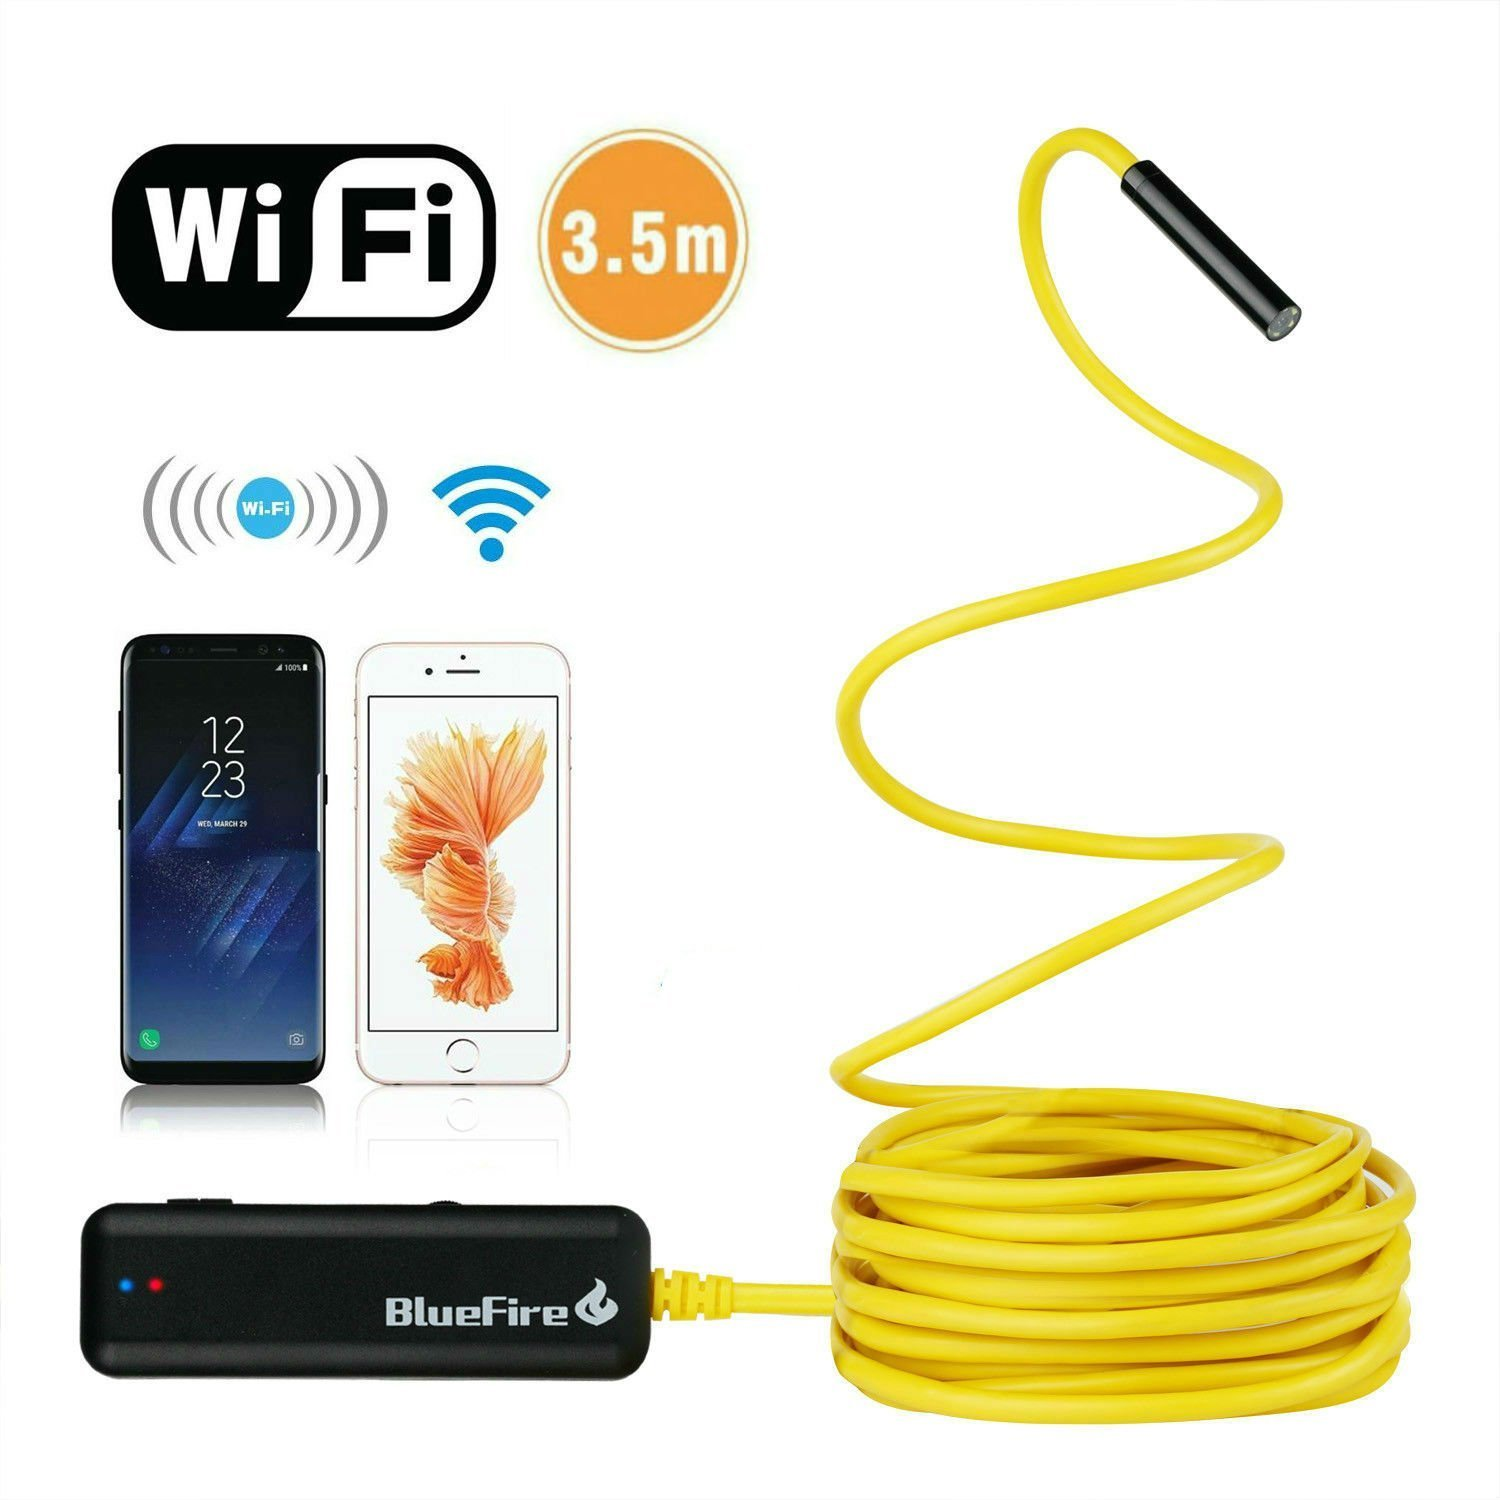 BlueFire Semi-rigid Flexible Wireless Endoscope IP67 Waterproof WiFi Borescope 2 MP HD Resolutions Inspection Camera Snake Camera for Android and iOS Smartphone, iPhone, Samsung, iPad, Tablet (11.5FT)